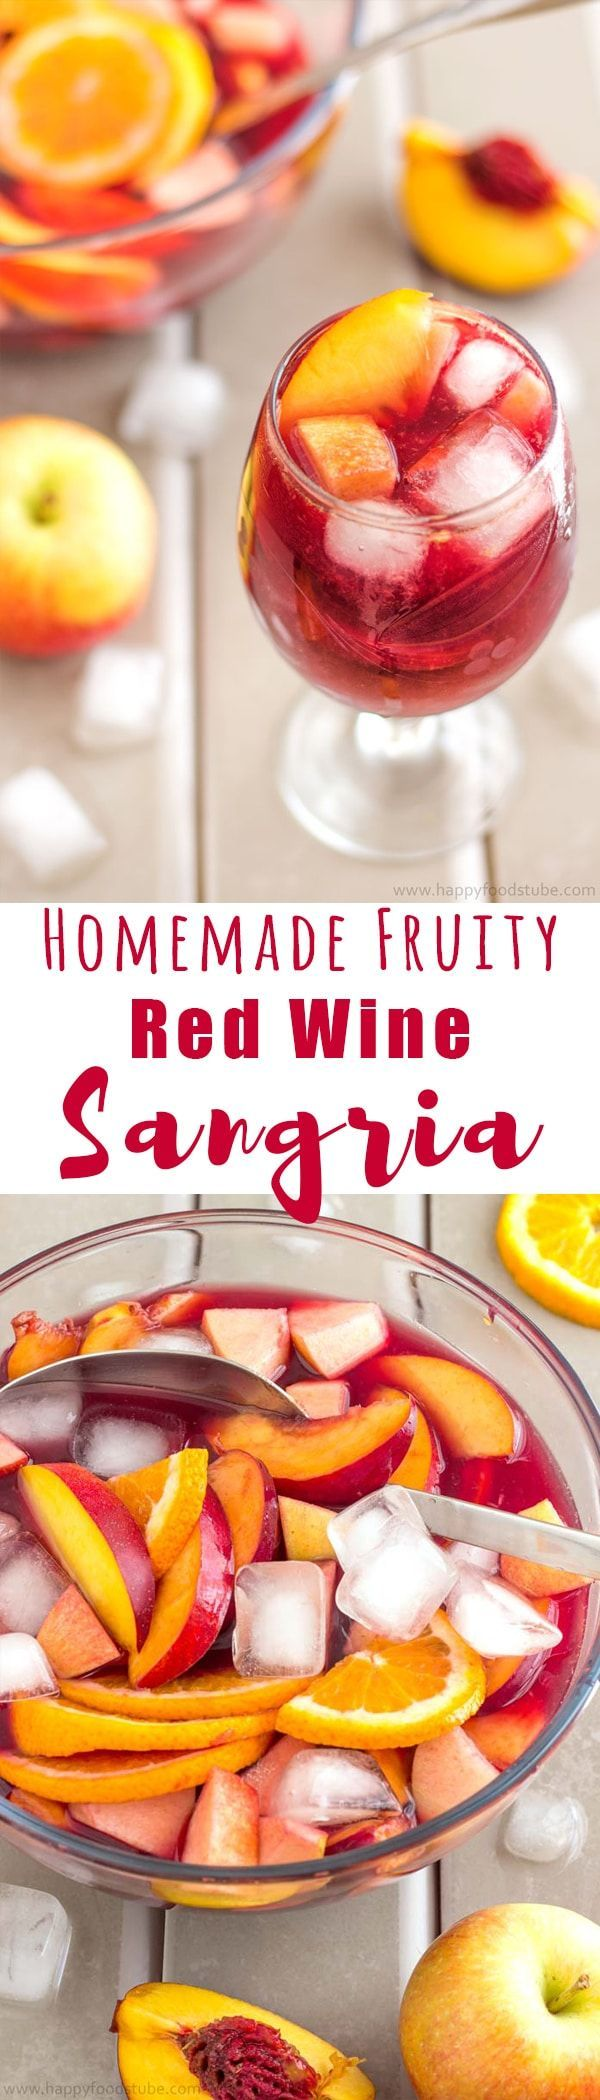 Homemade Fruity Red Wine Sangria. Super easy Spanish drink recipe. Nectarines, Apples, Oranges + Red Wine and Juice. Ready in 10 minutes via @happyfoodstube